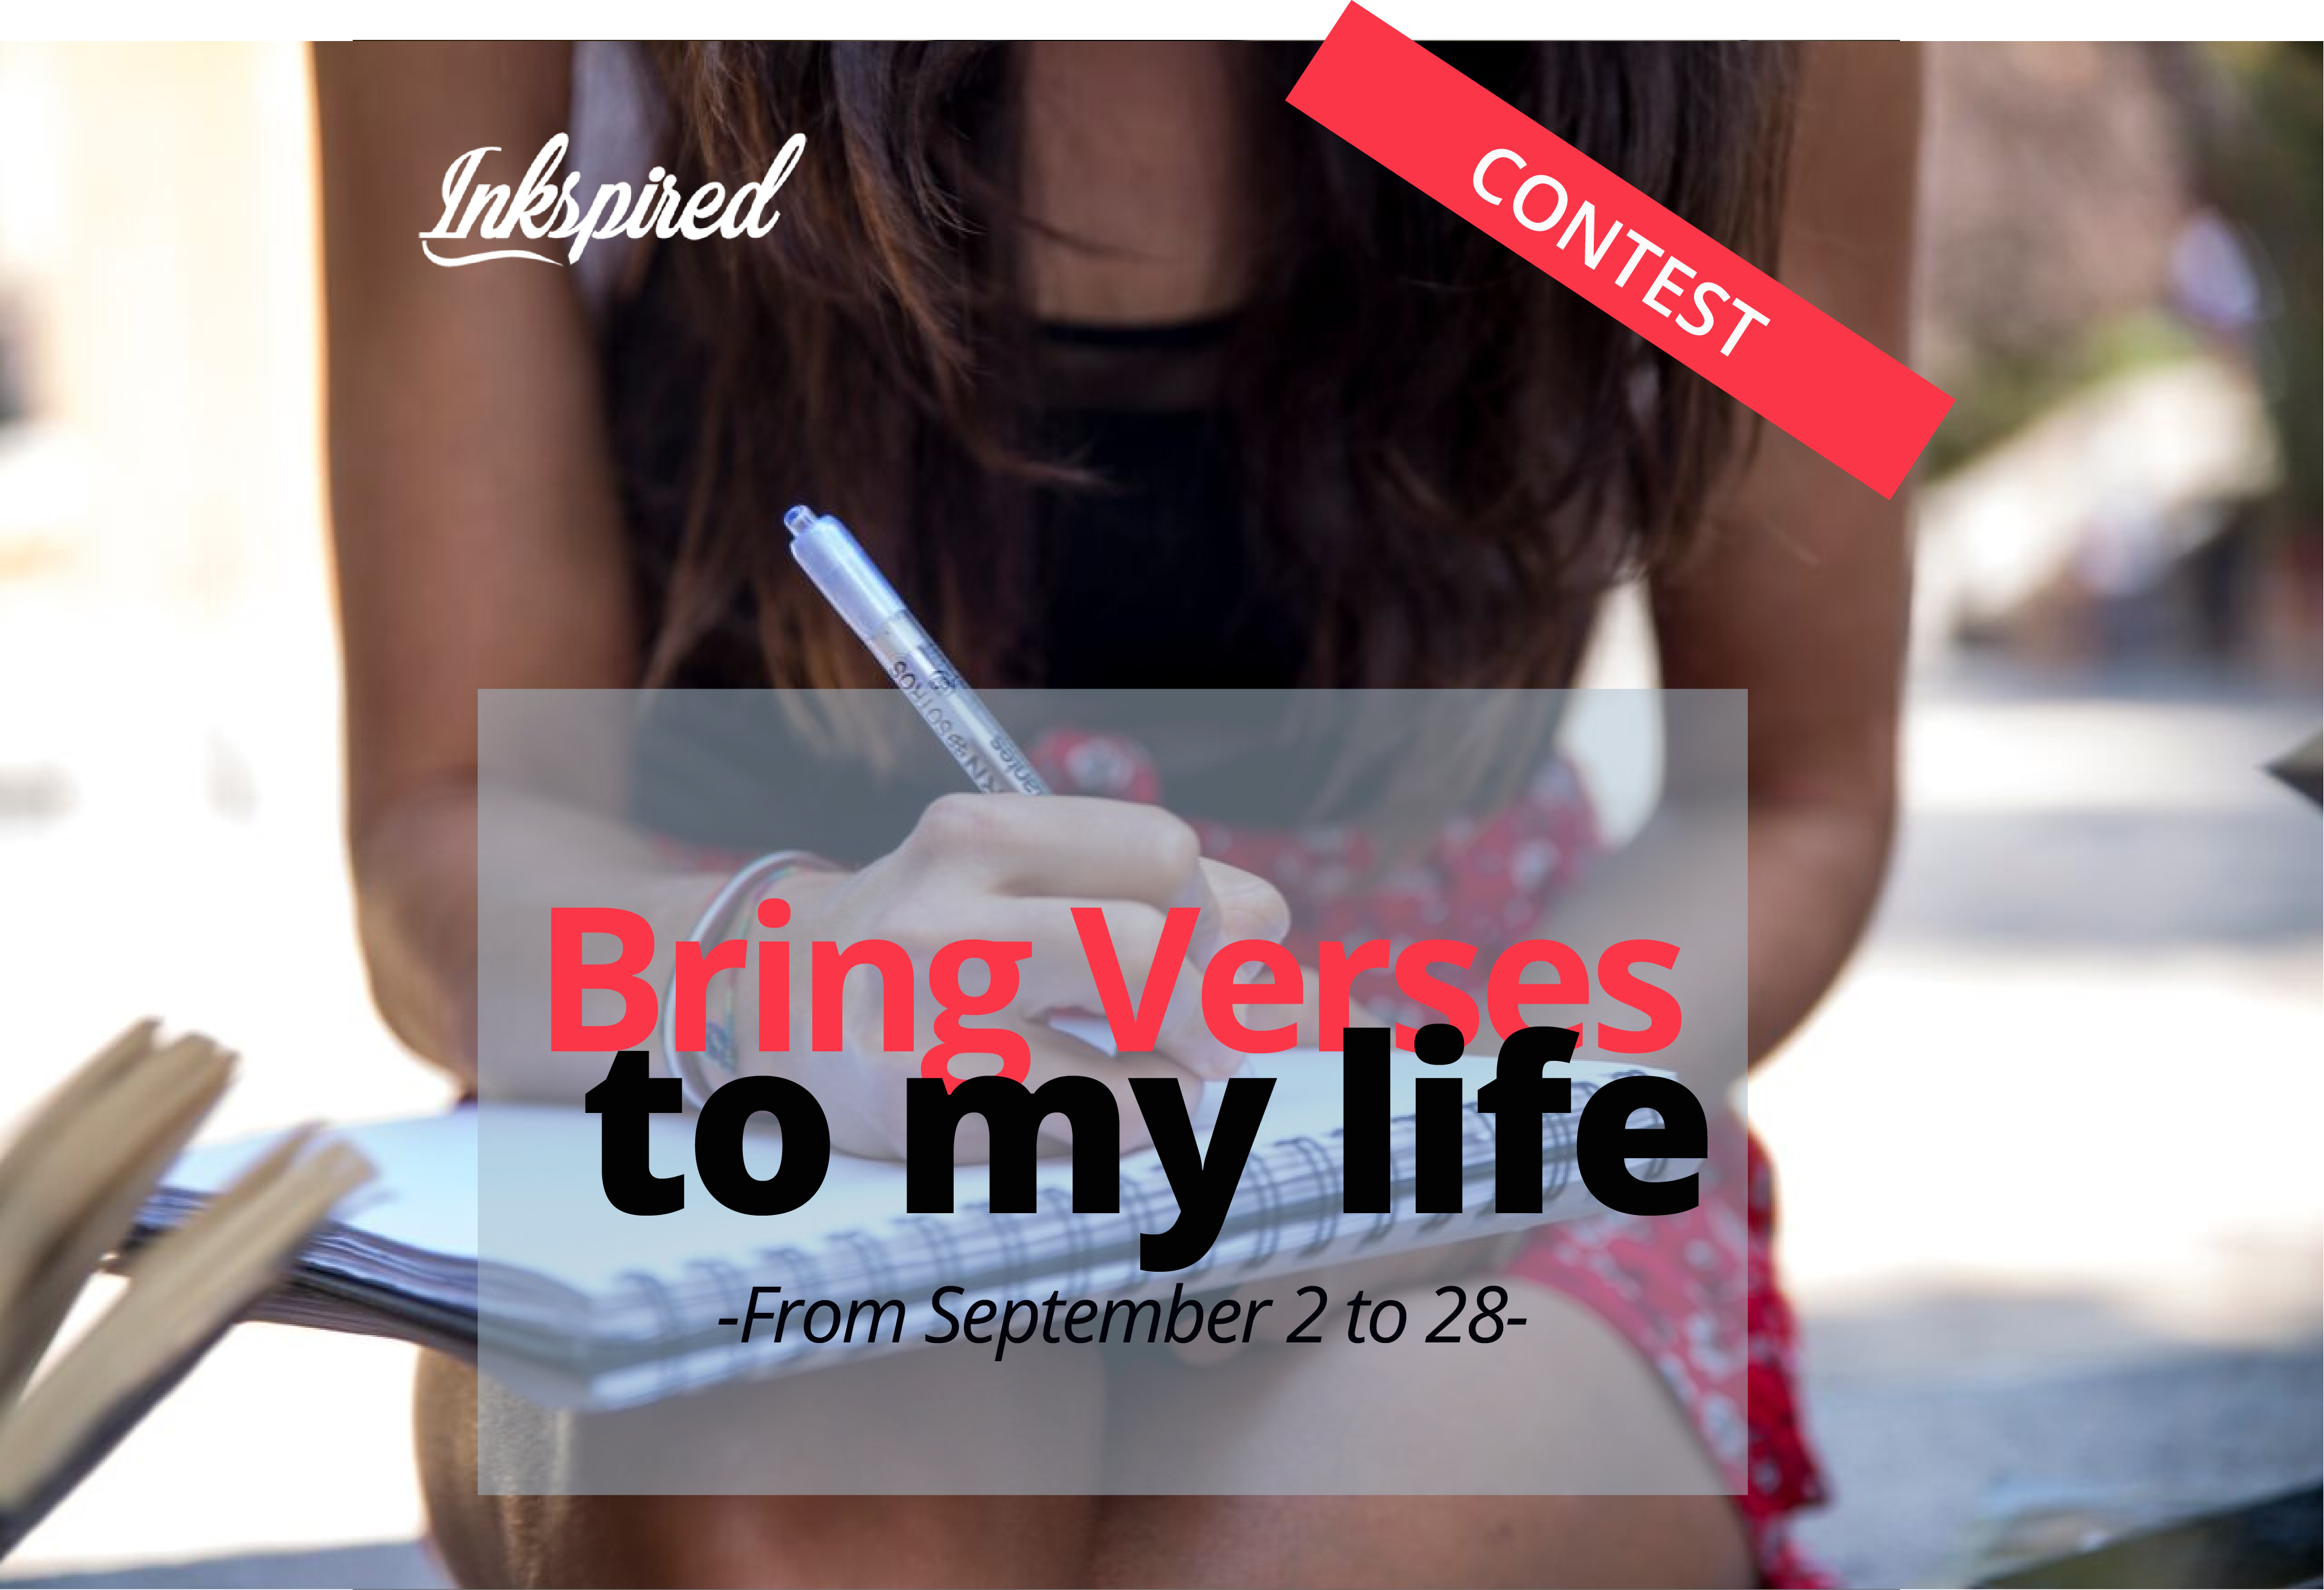 Bring verses to my life